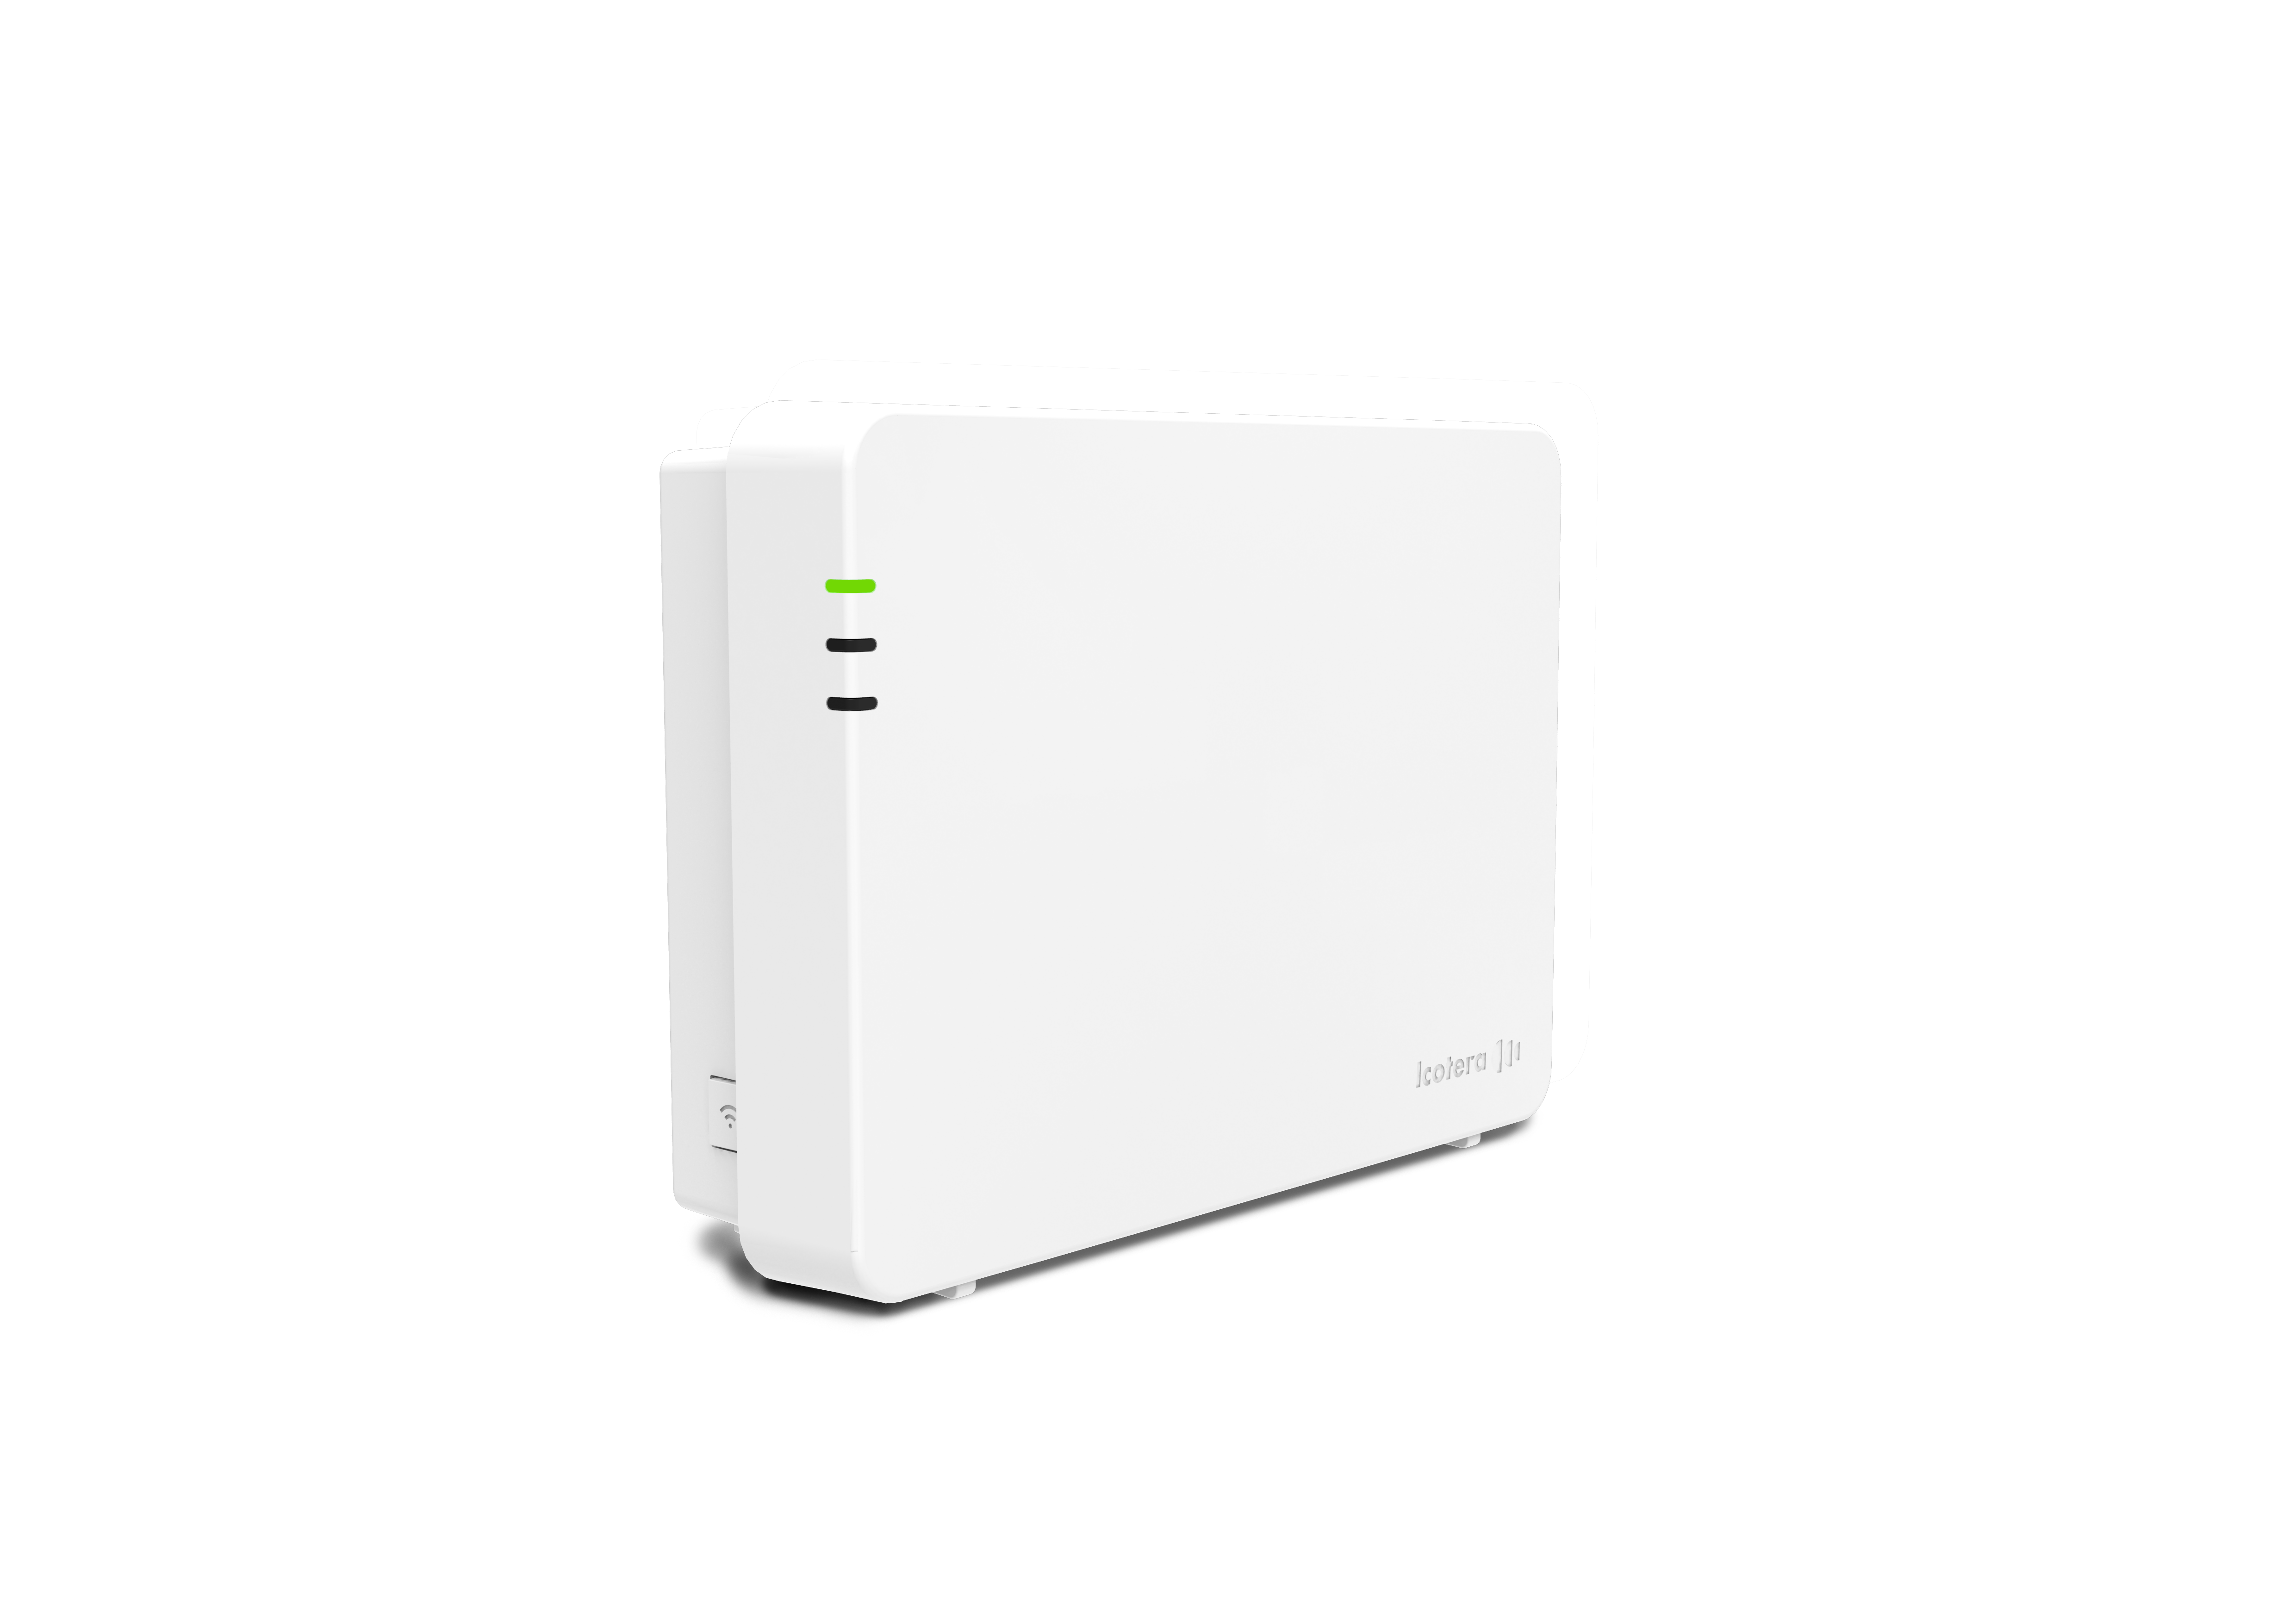 Wi-Fi 6 Ethernet Router - i4880